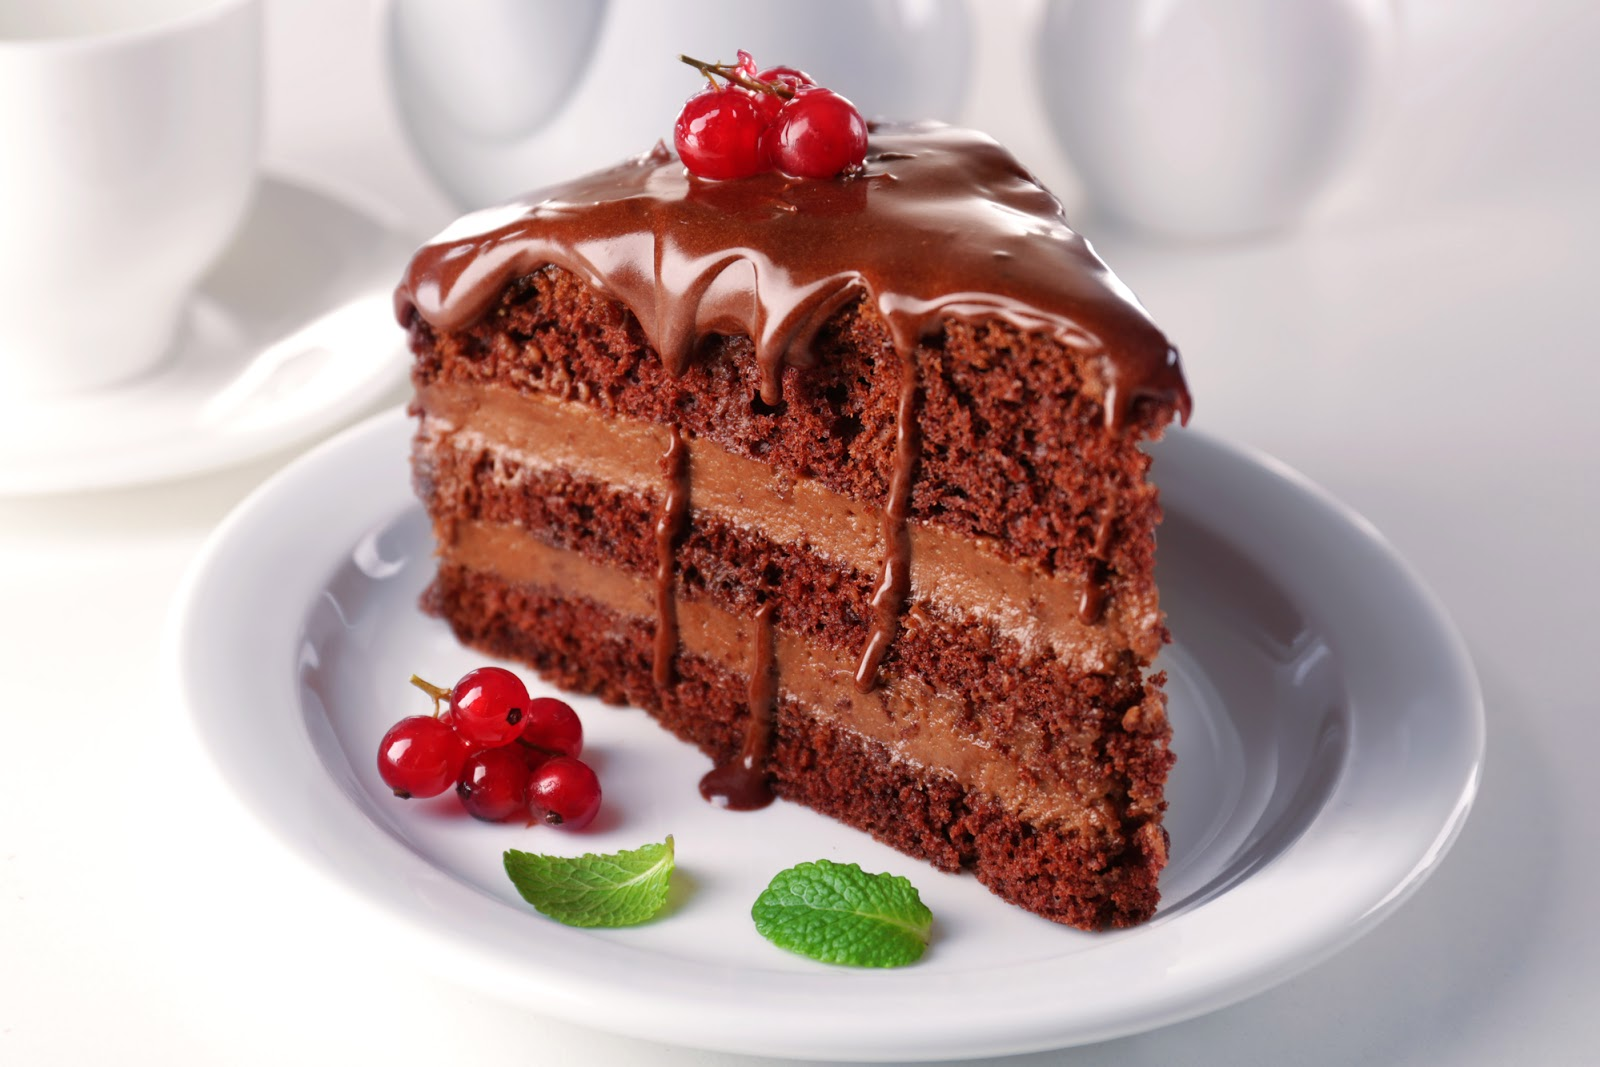 Magnificent Chocolate Mega Bar Cake